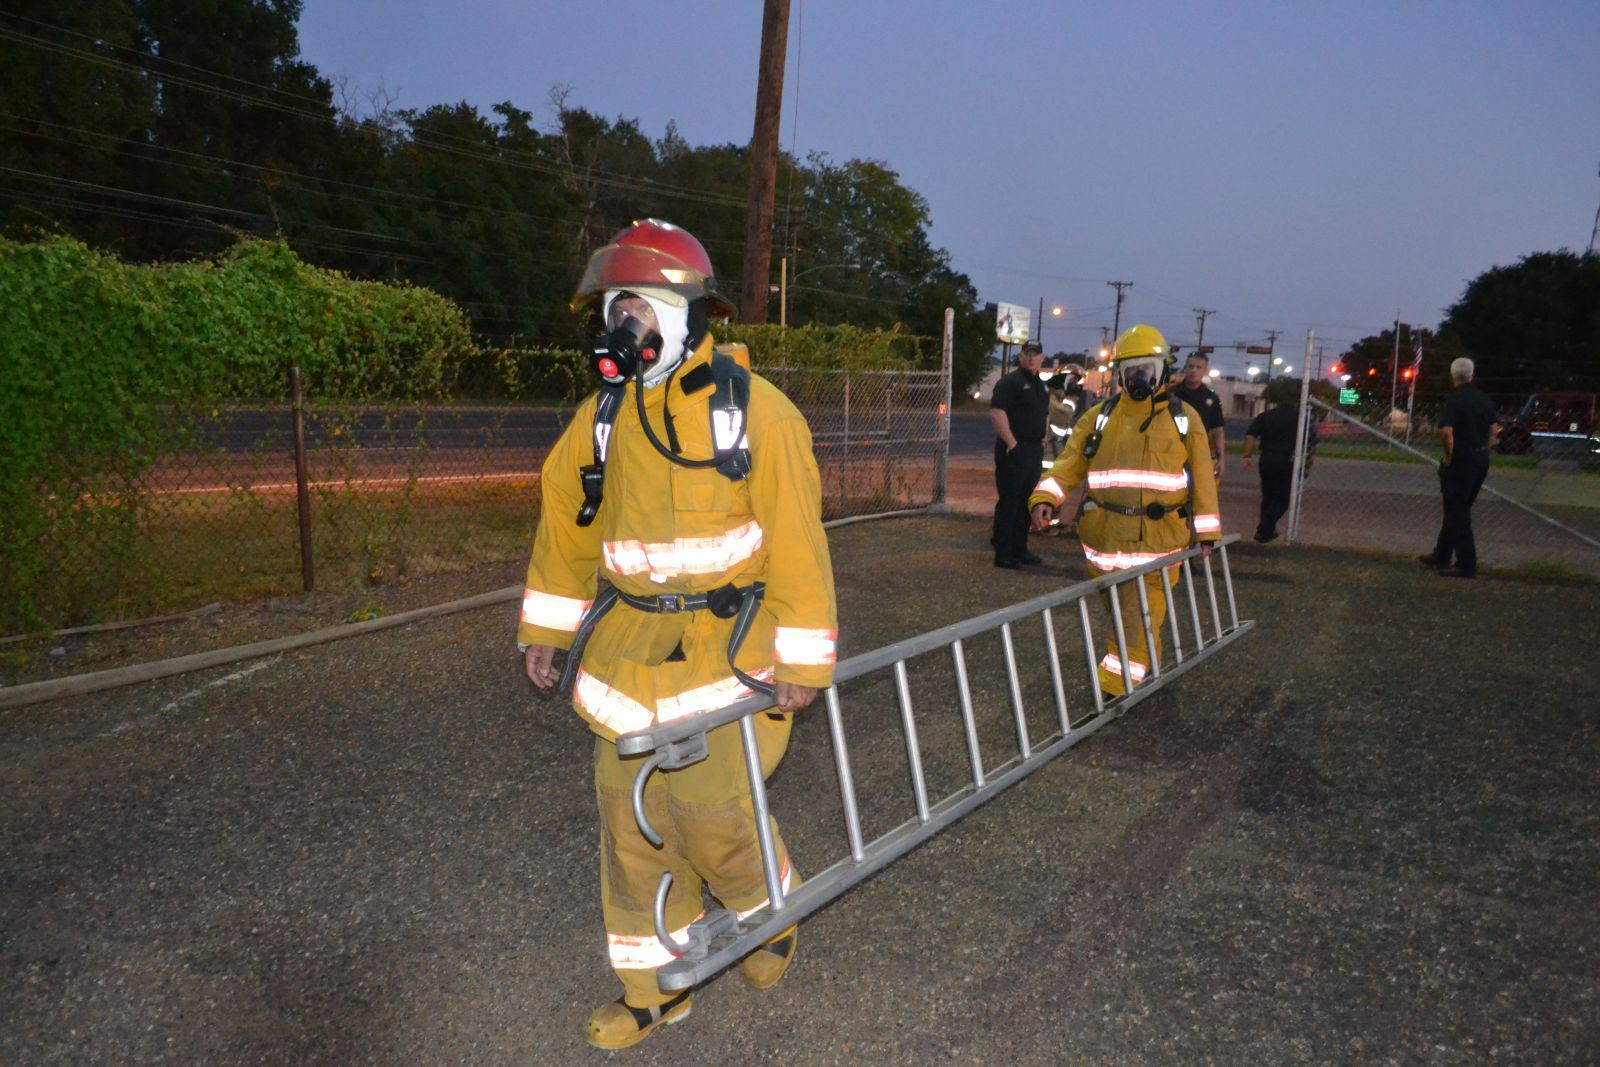 Working with Ladders in Firefighting Gear